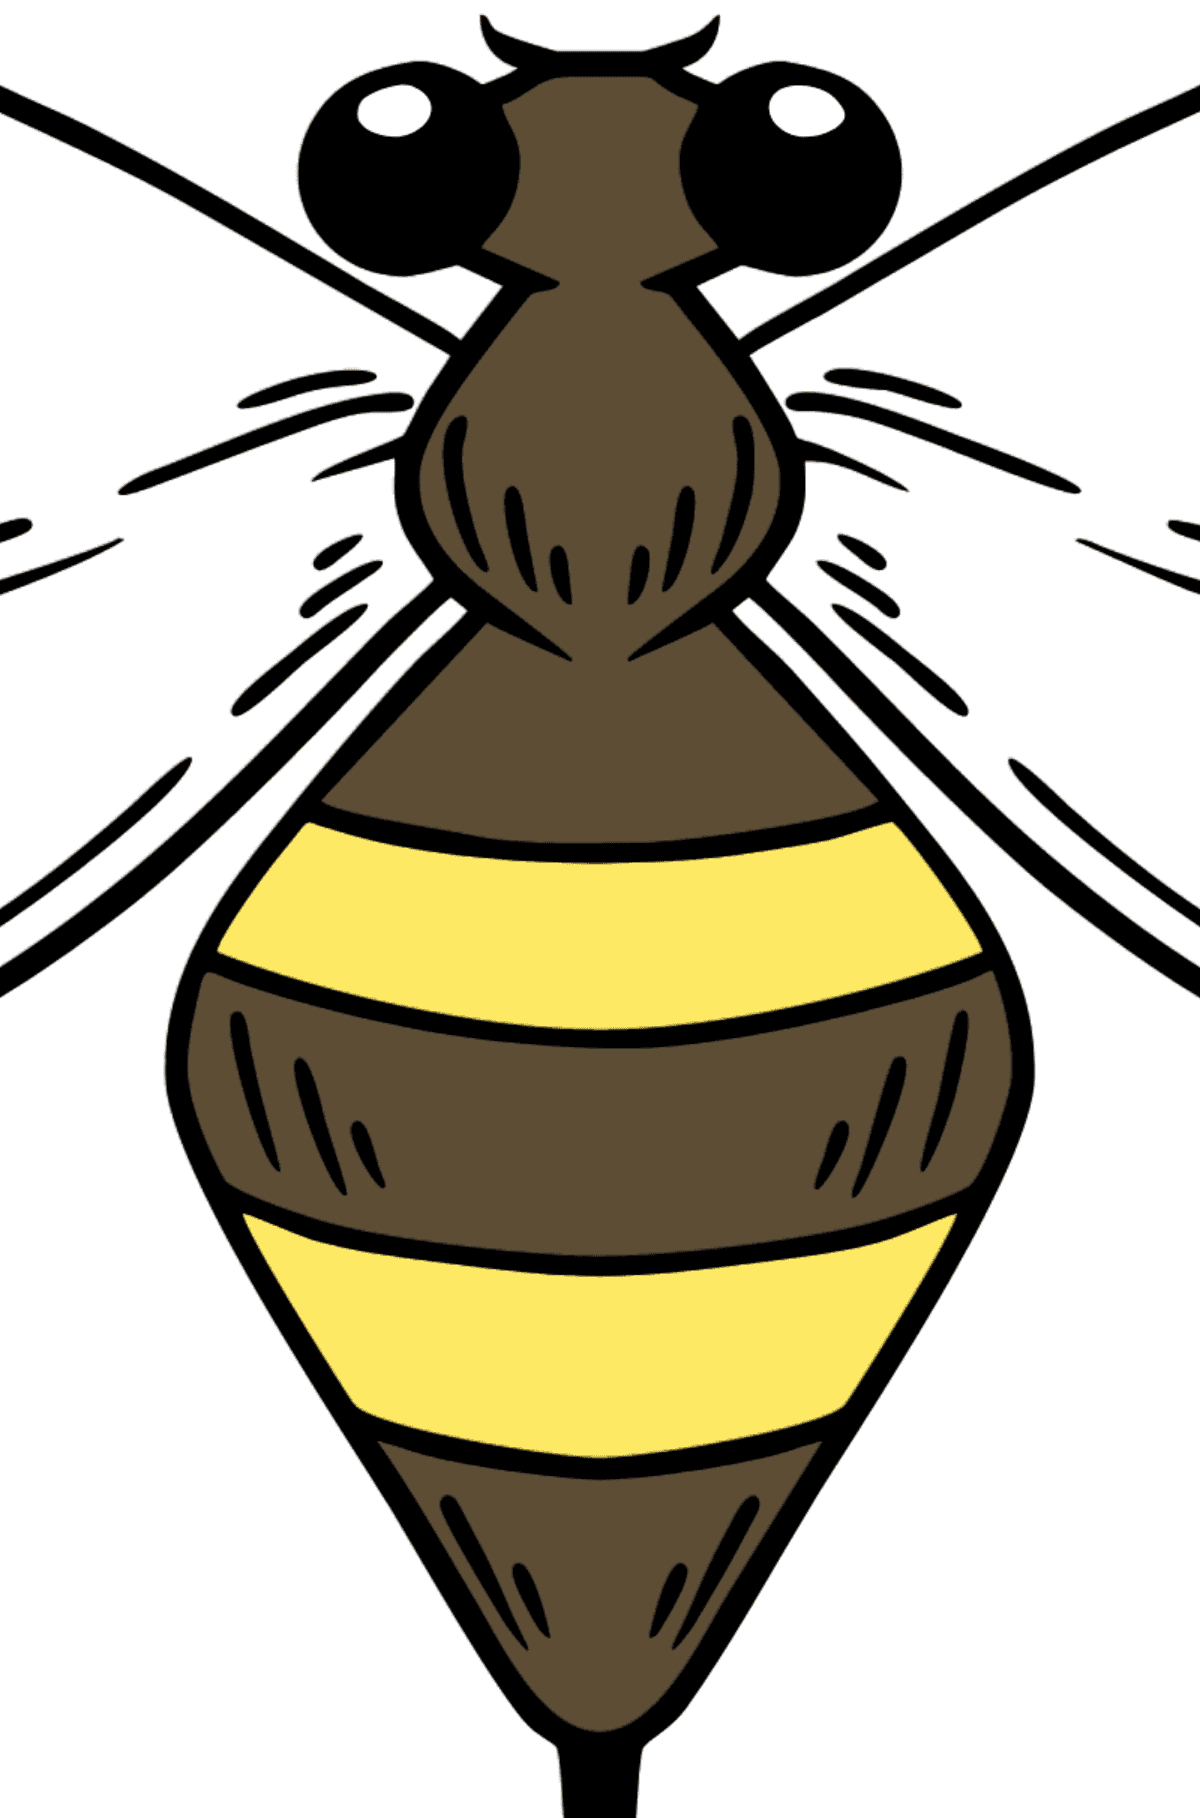 Wasp coloring page - Math Coloring - Addition for Kids